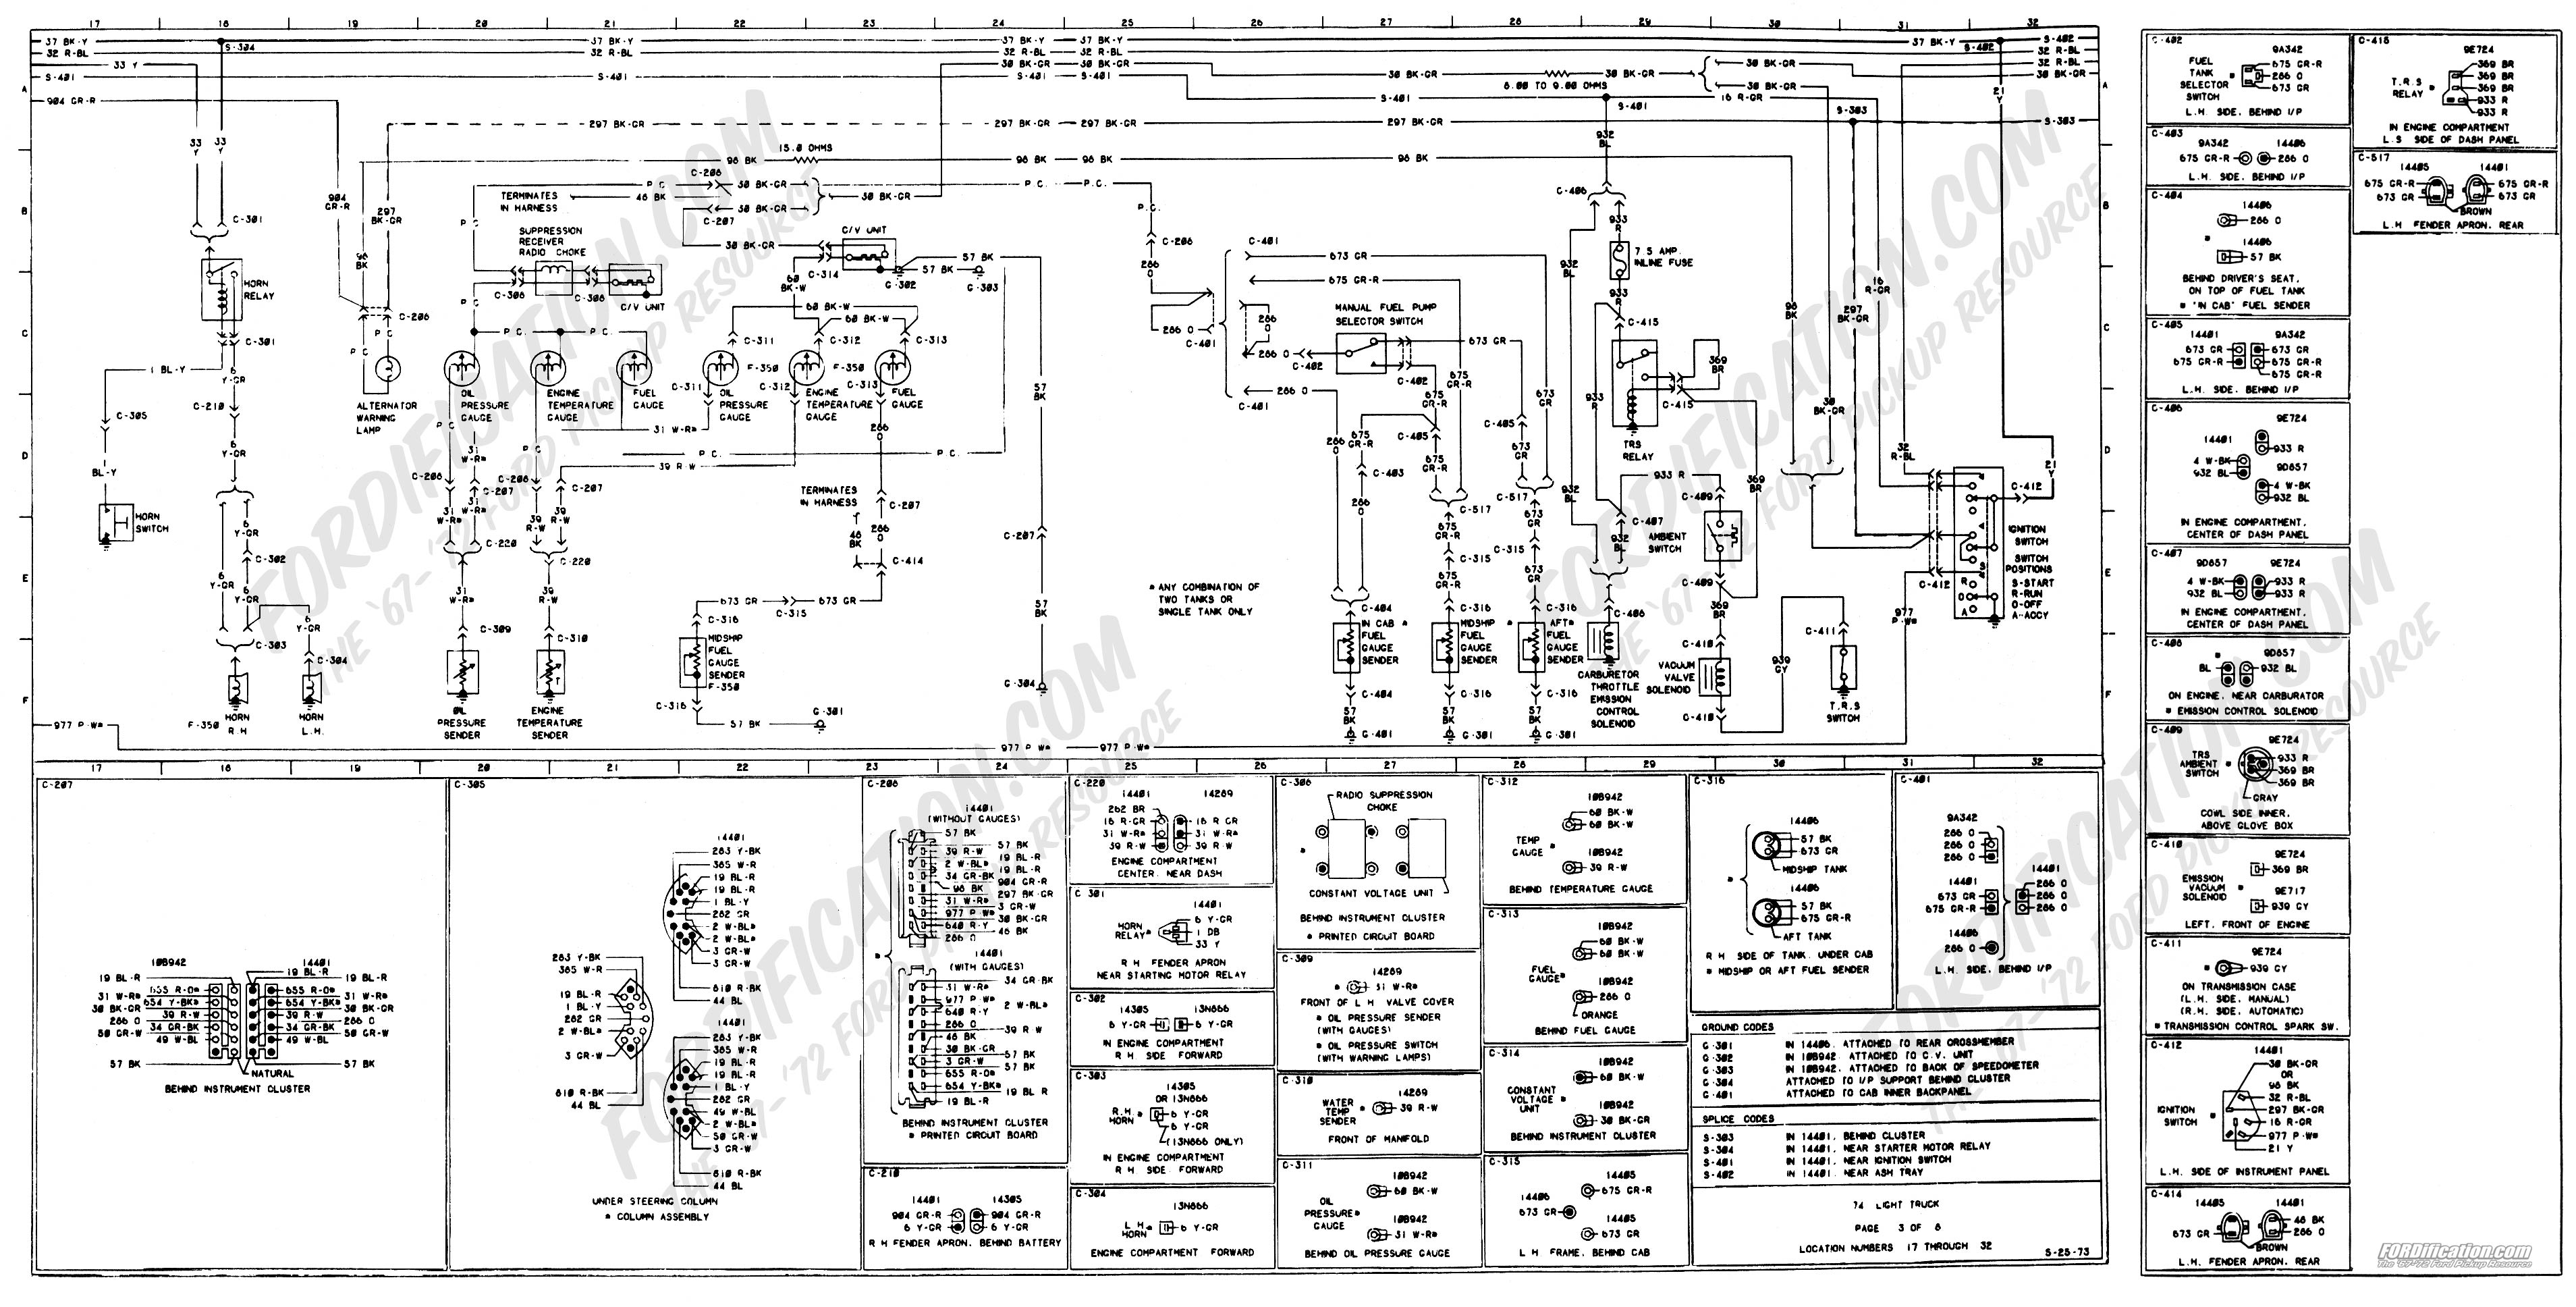 wiring_74master_3of8 1973 1979 ford truck wiring diagrams & schematics fordification net Wiring Harness Diagram at bakdesigns.co